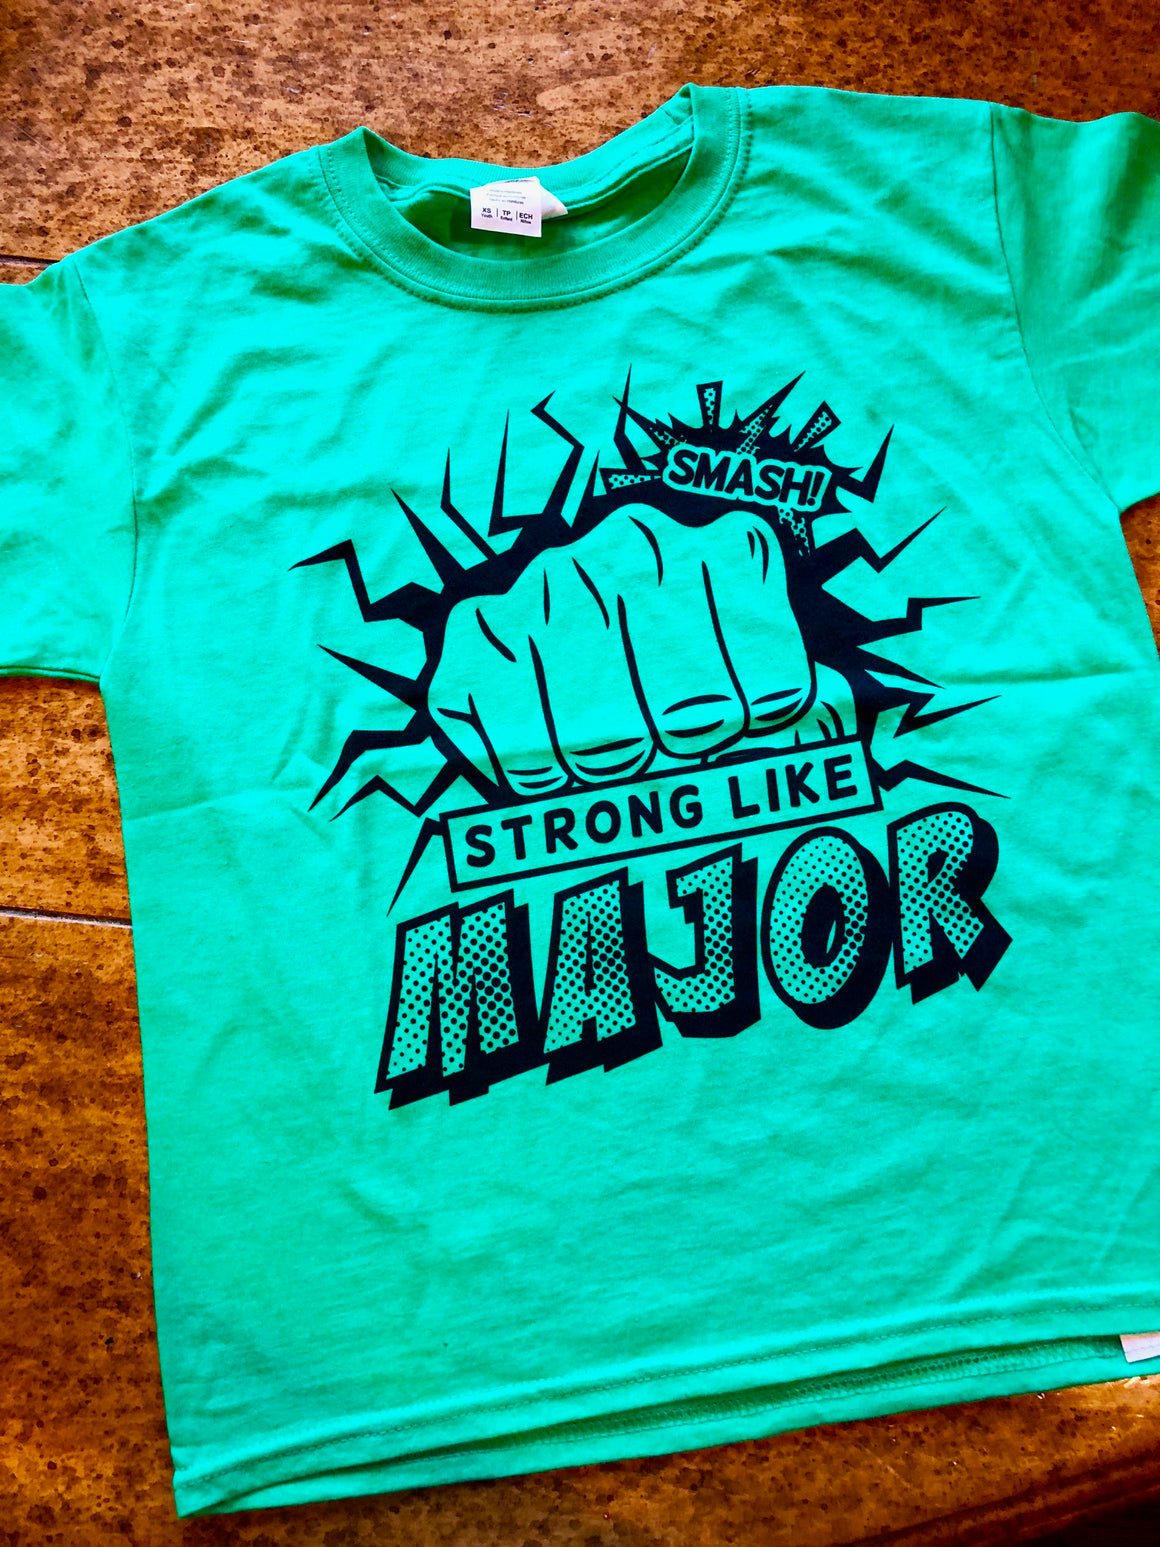 Strong Like Major t-shirt supporting CHD (congenital heart defects)